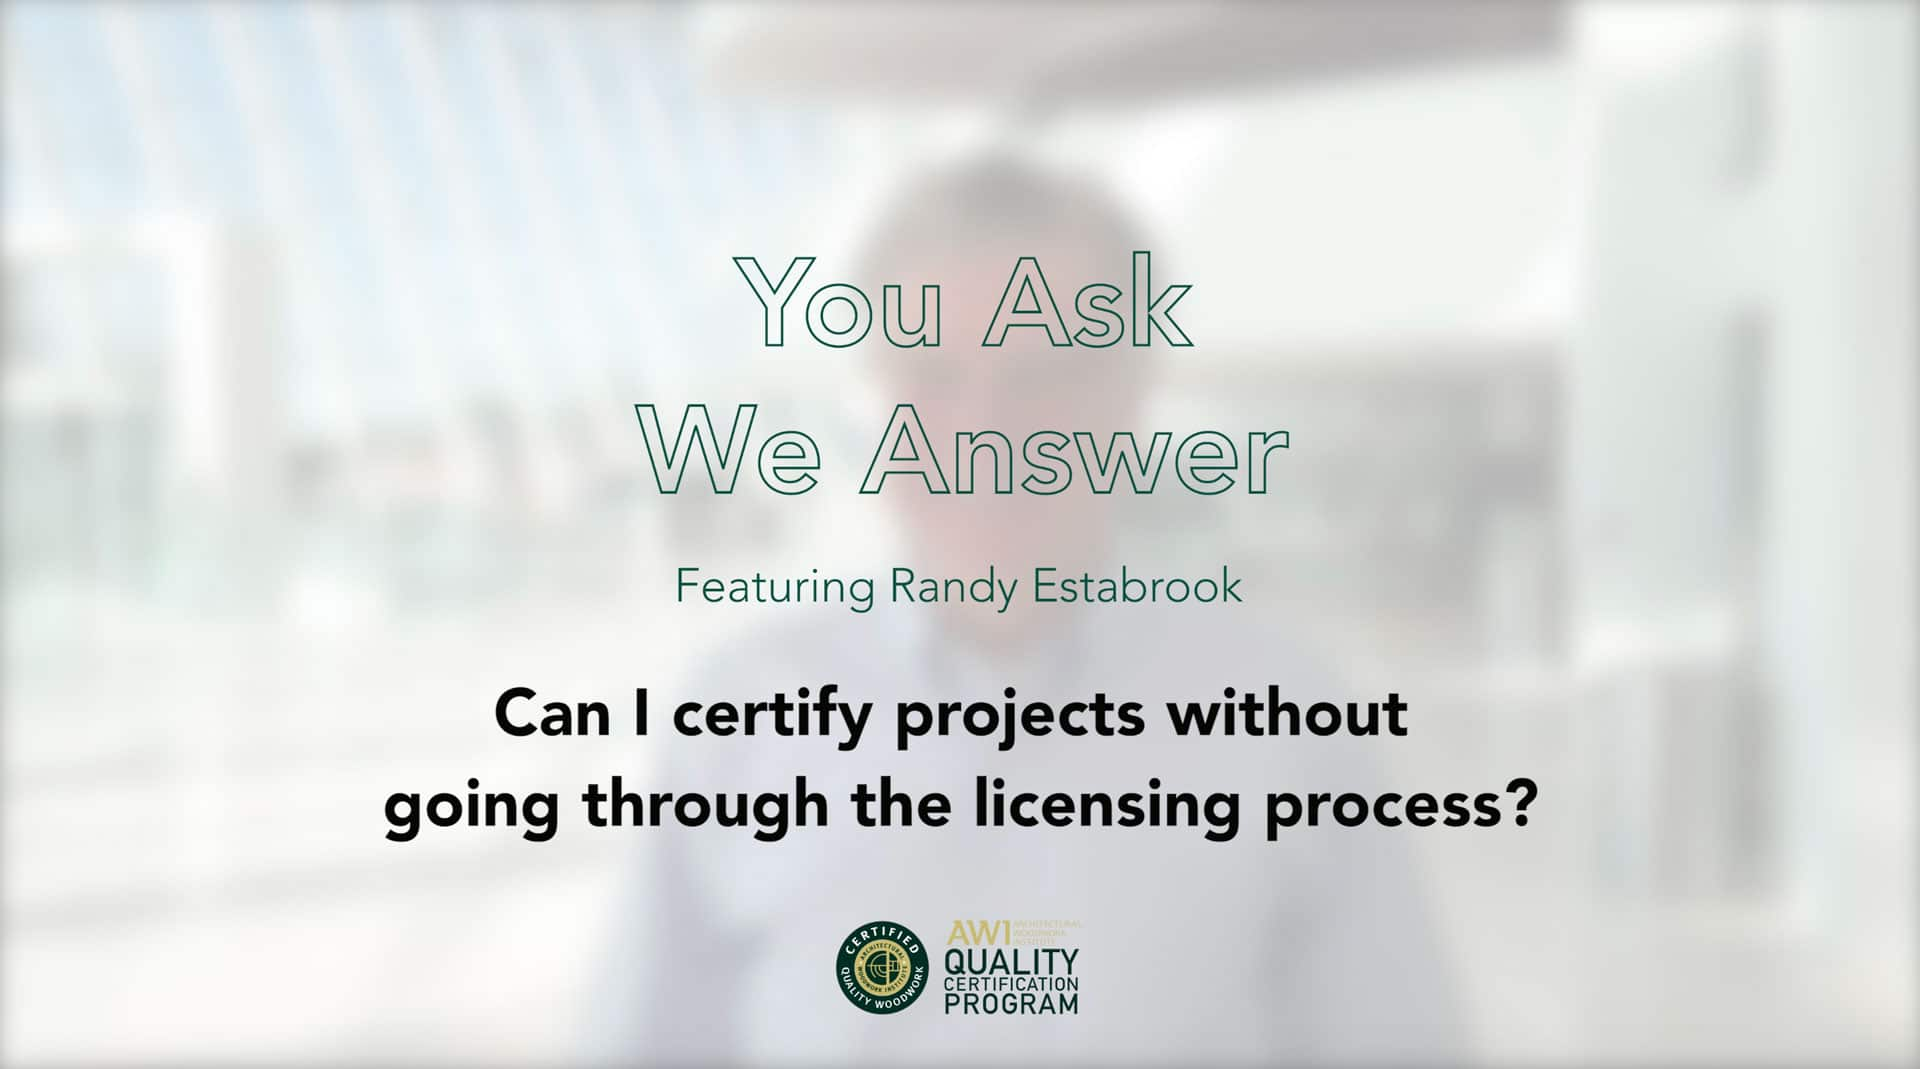 Certify projects without license AWI QCP